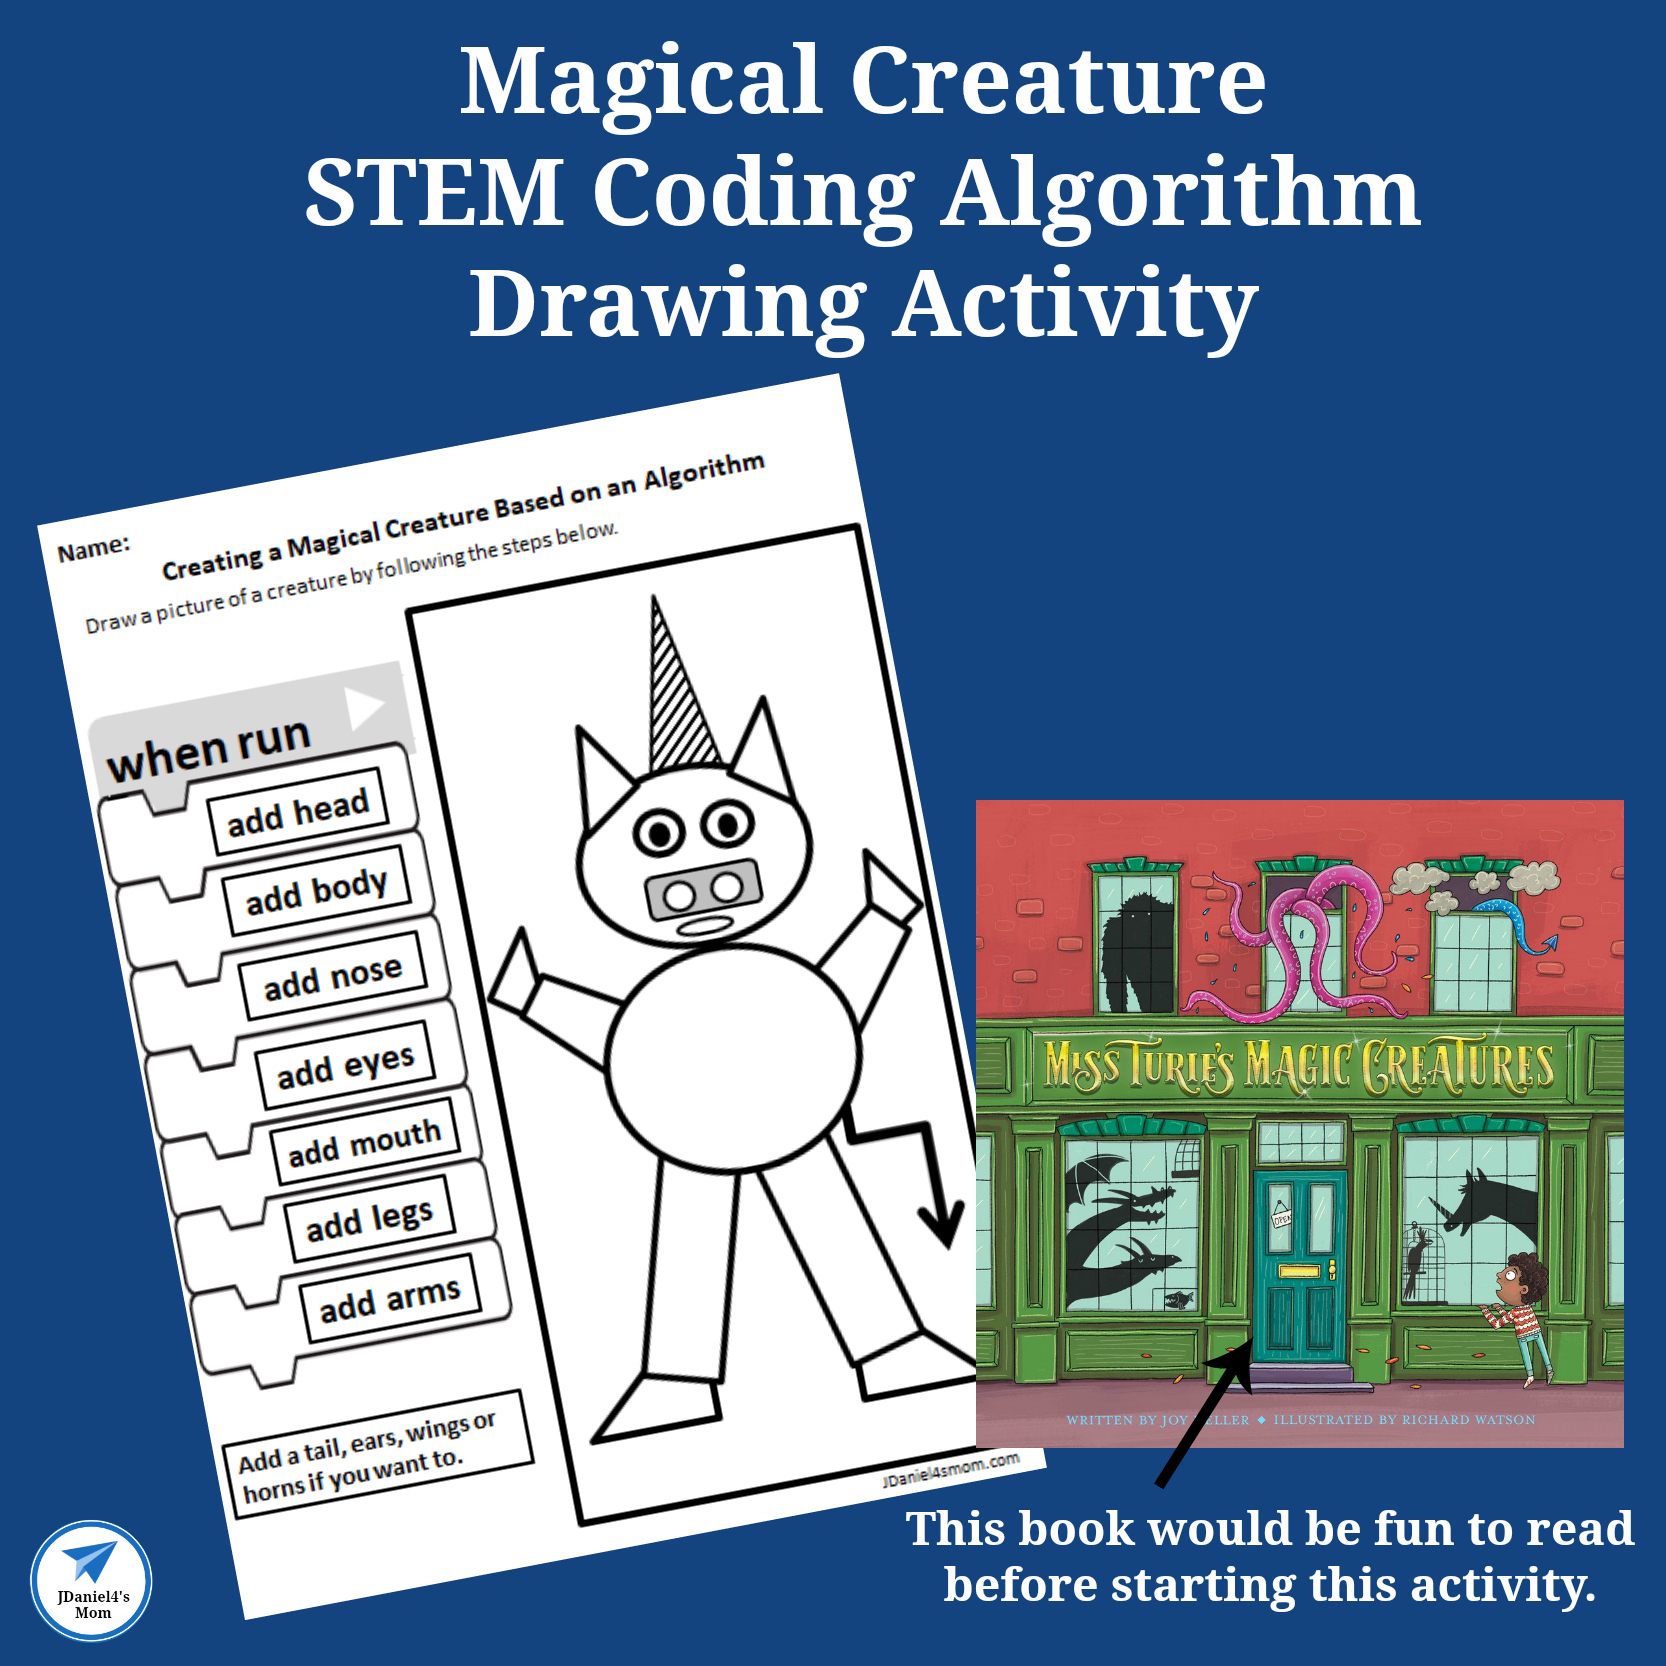 Magical Creatures STEM Coding Algorithm Drawing Activity - This activity was created to go along with the book Miss Turie's Magic Creatures. It is a fun way to work on coding and exploring algorithms.